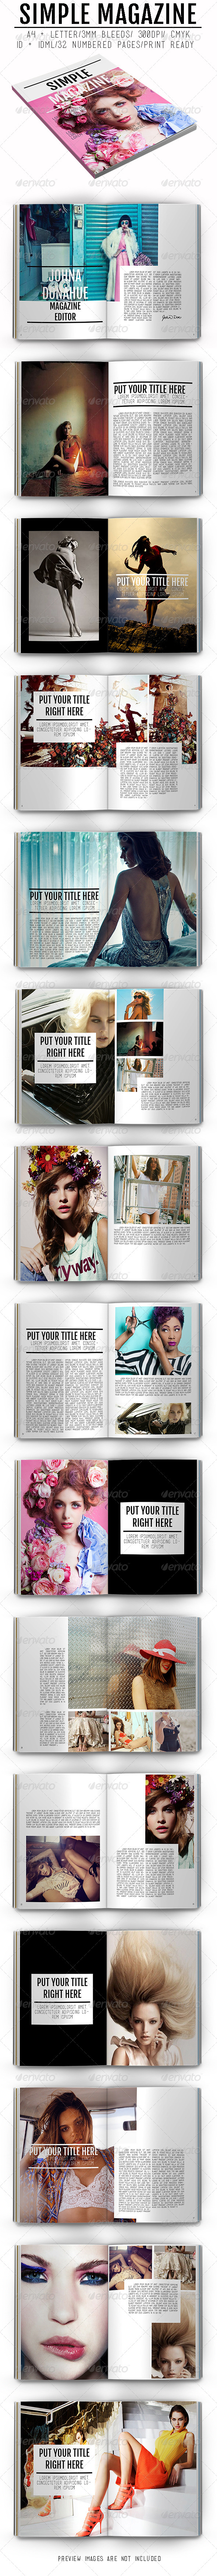 GraphicRiver Simple Magazine 8045386